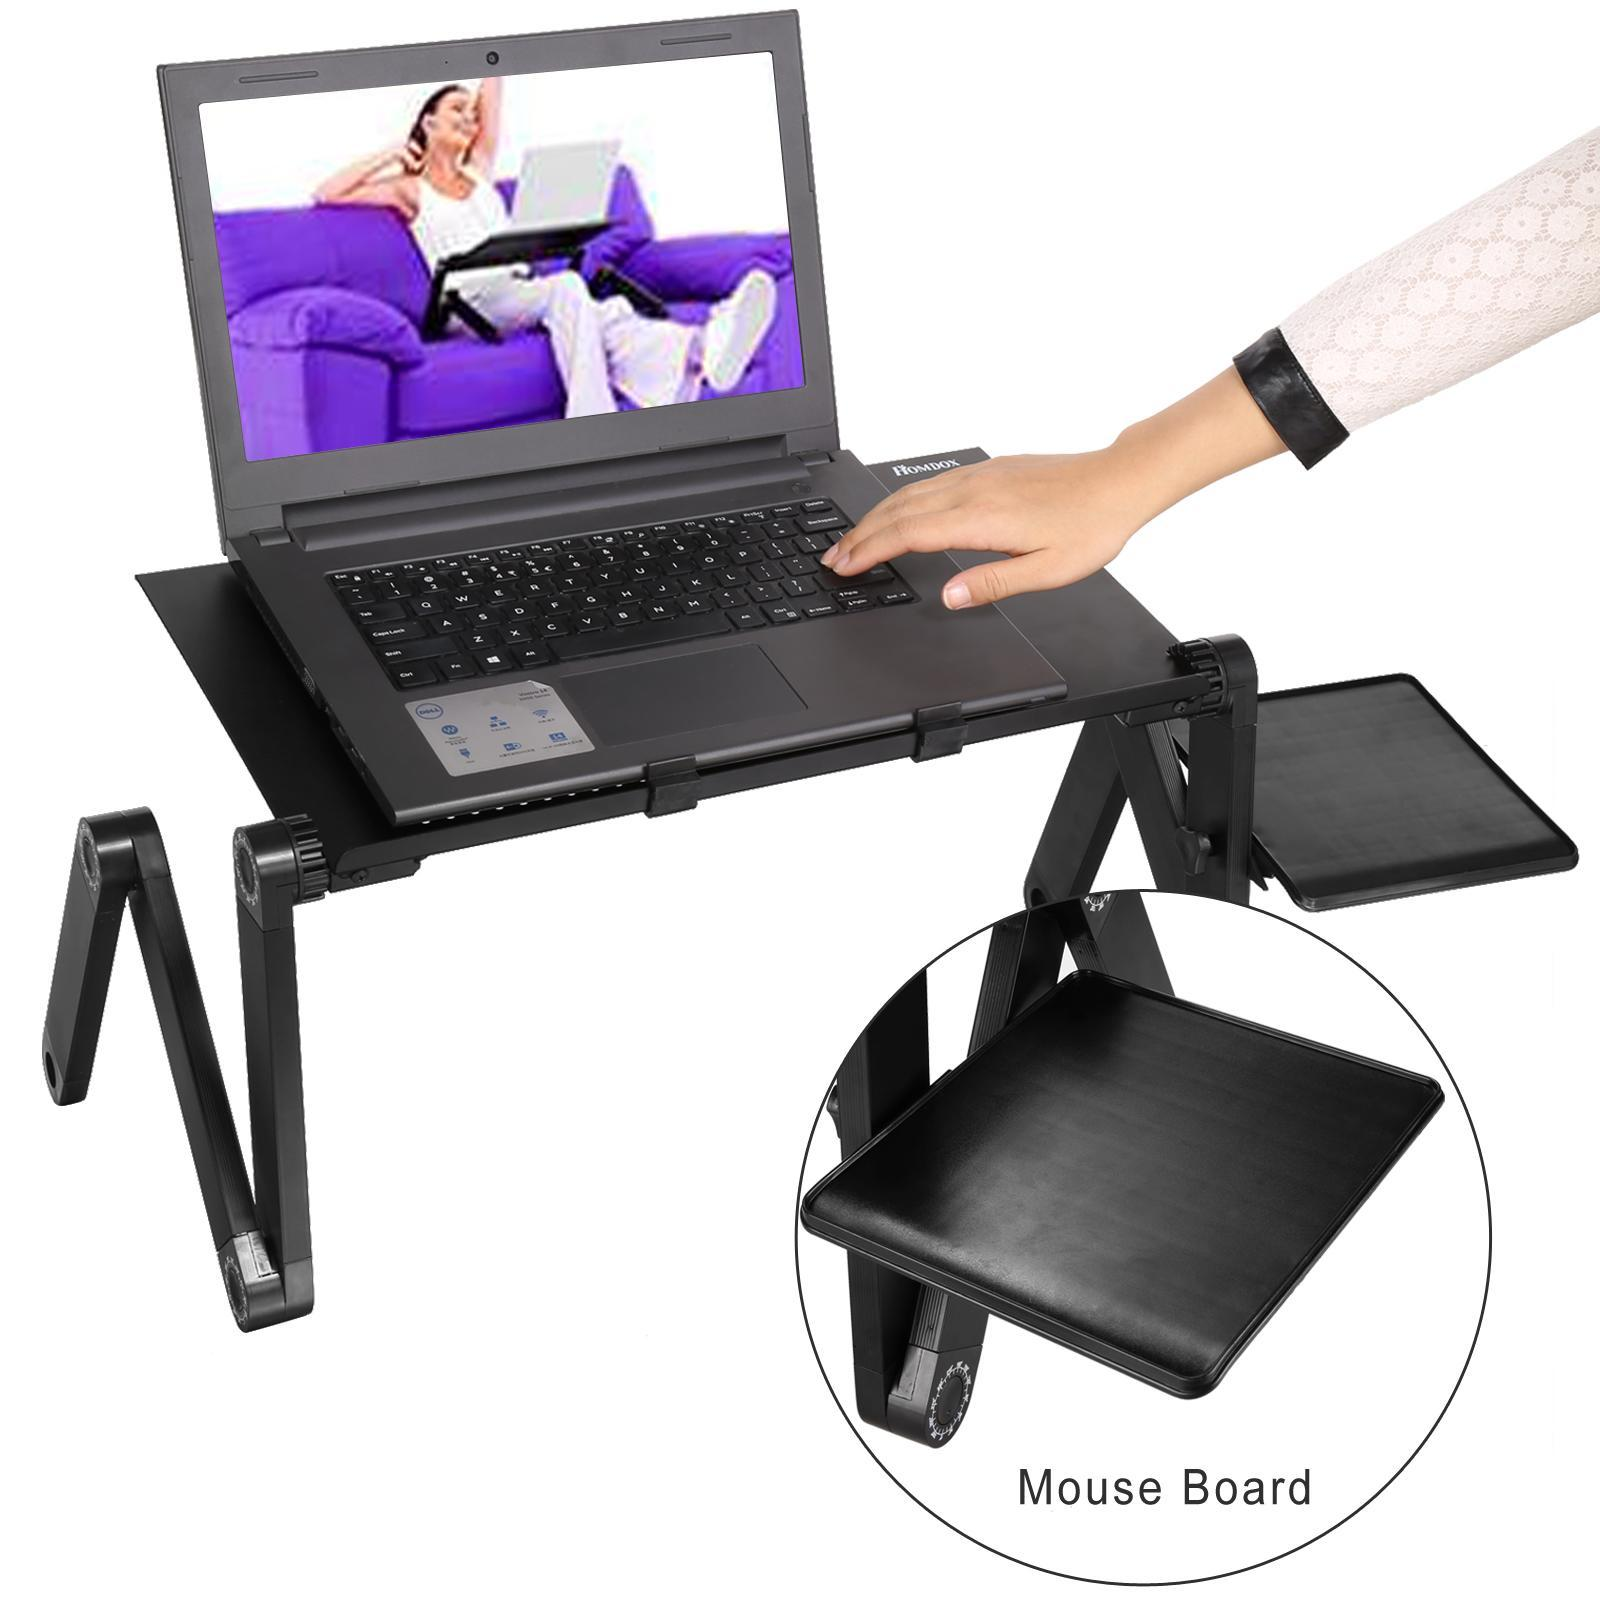 Homdox 360 Degree Adjustable Foldable Laptop Notebook Desk User Manual Table Stand With Mouse BoardHomdox 360 Degree Adjustable Foldable Laptop Notebook Desk User Manual Table Stand With Mouse Board